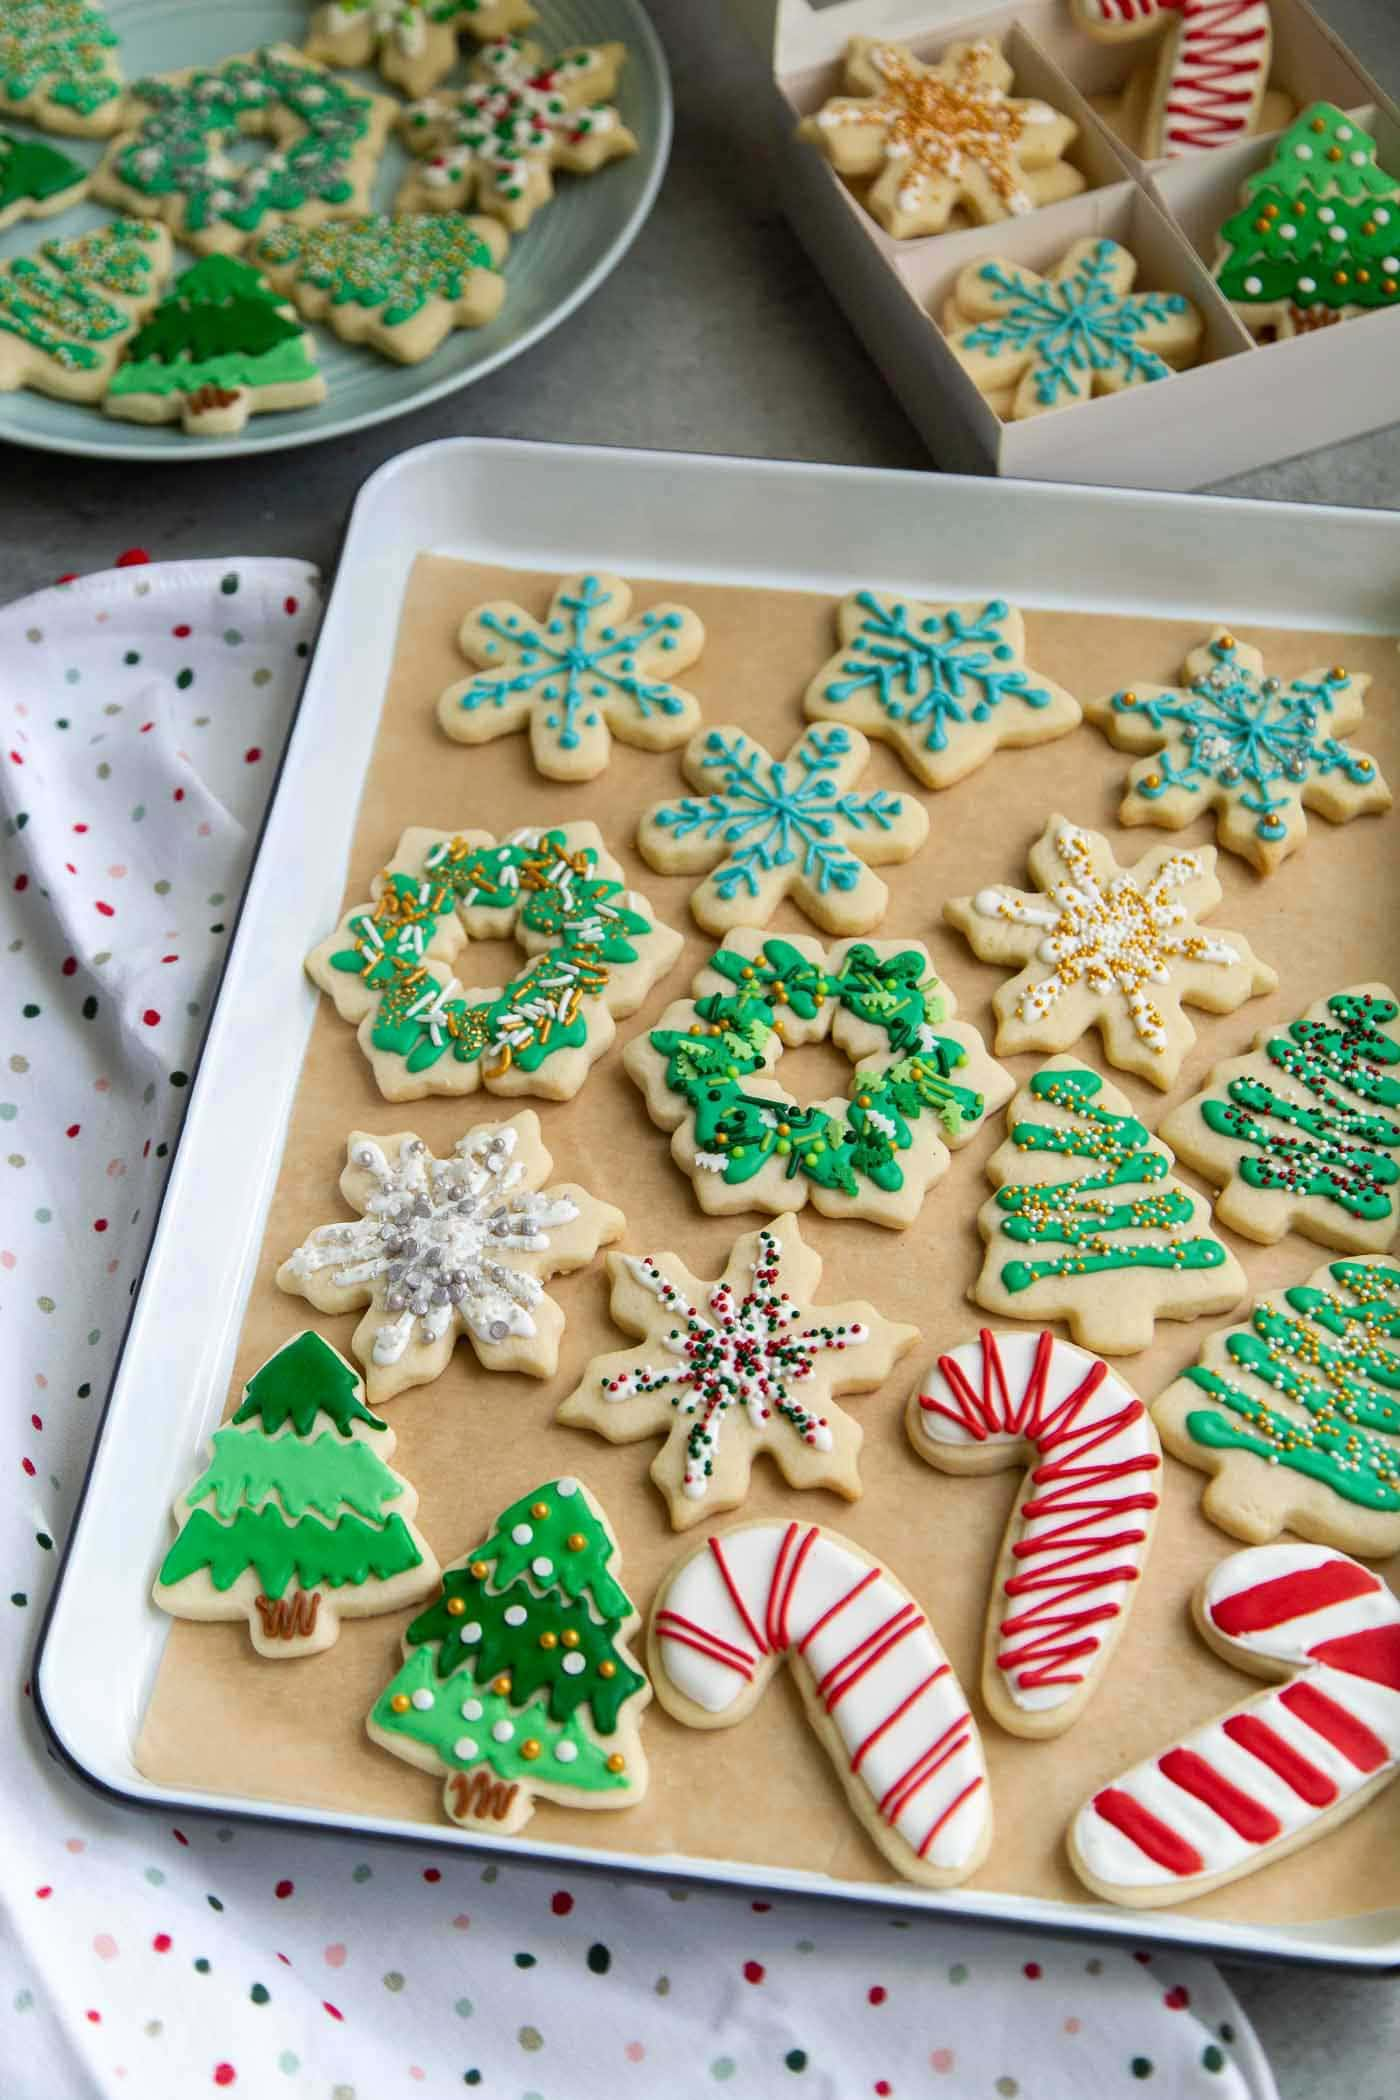 Decorated Holiday Sugar Cookies